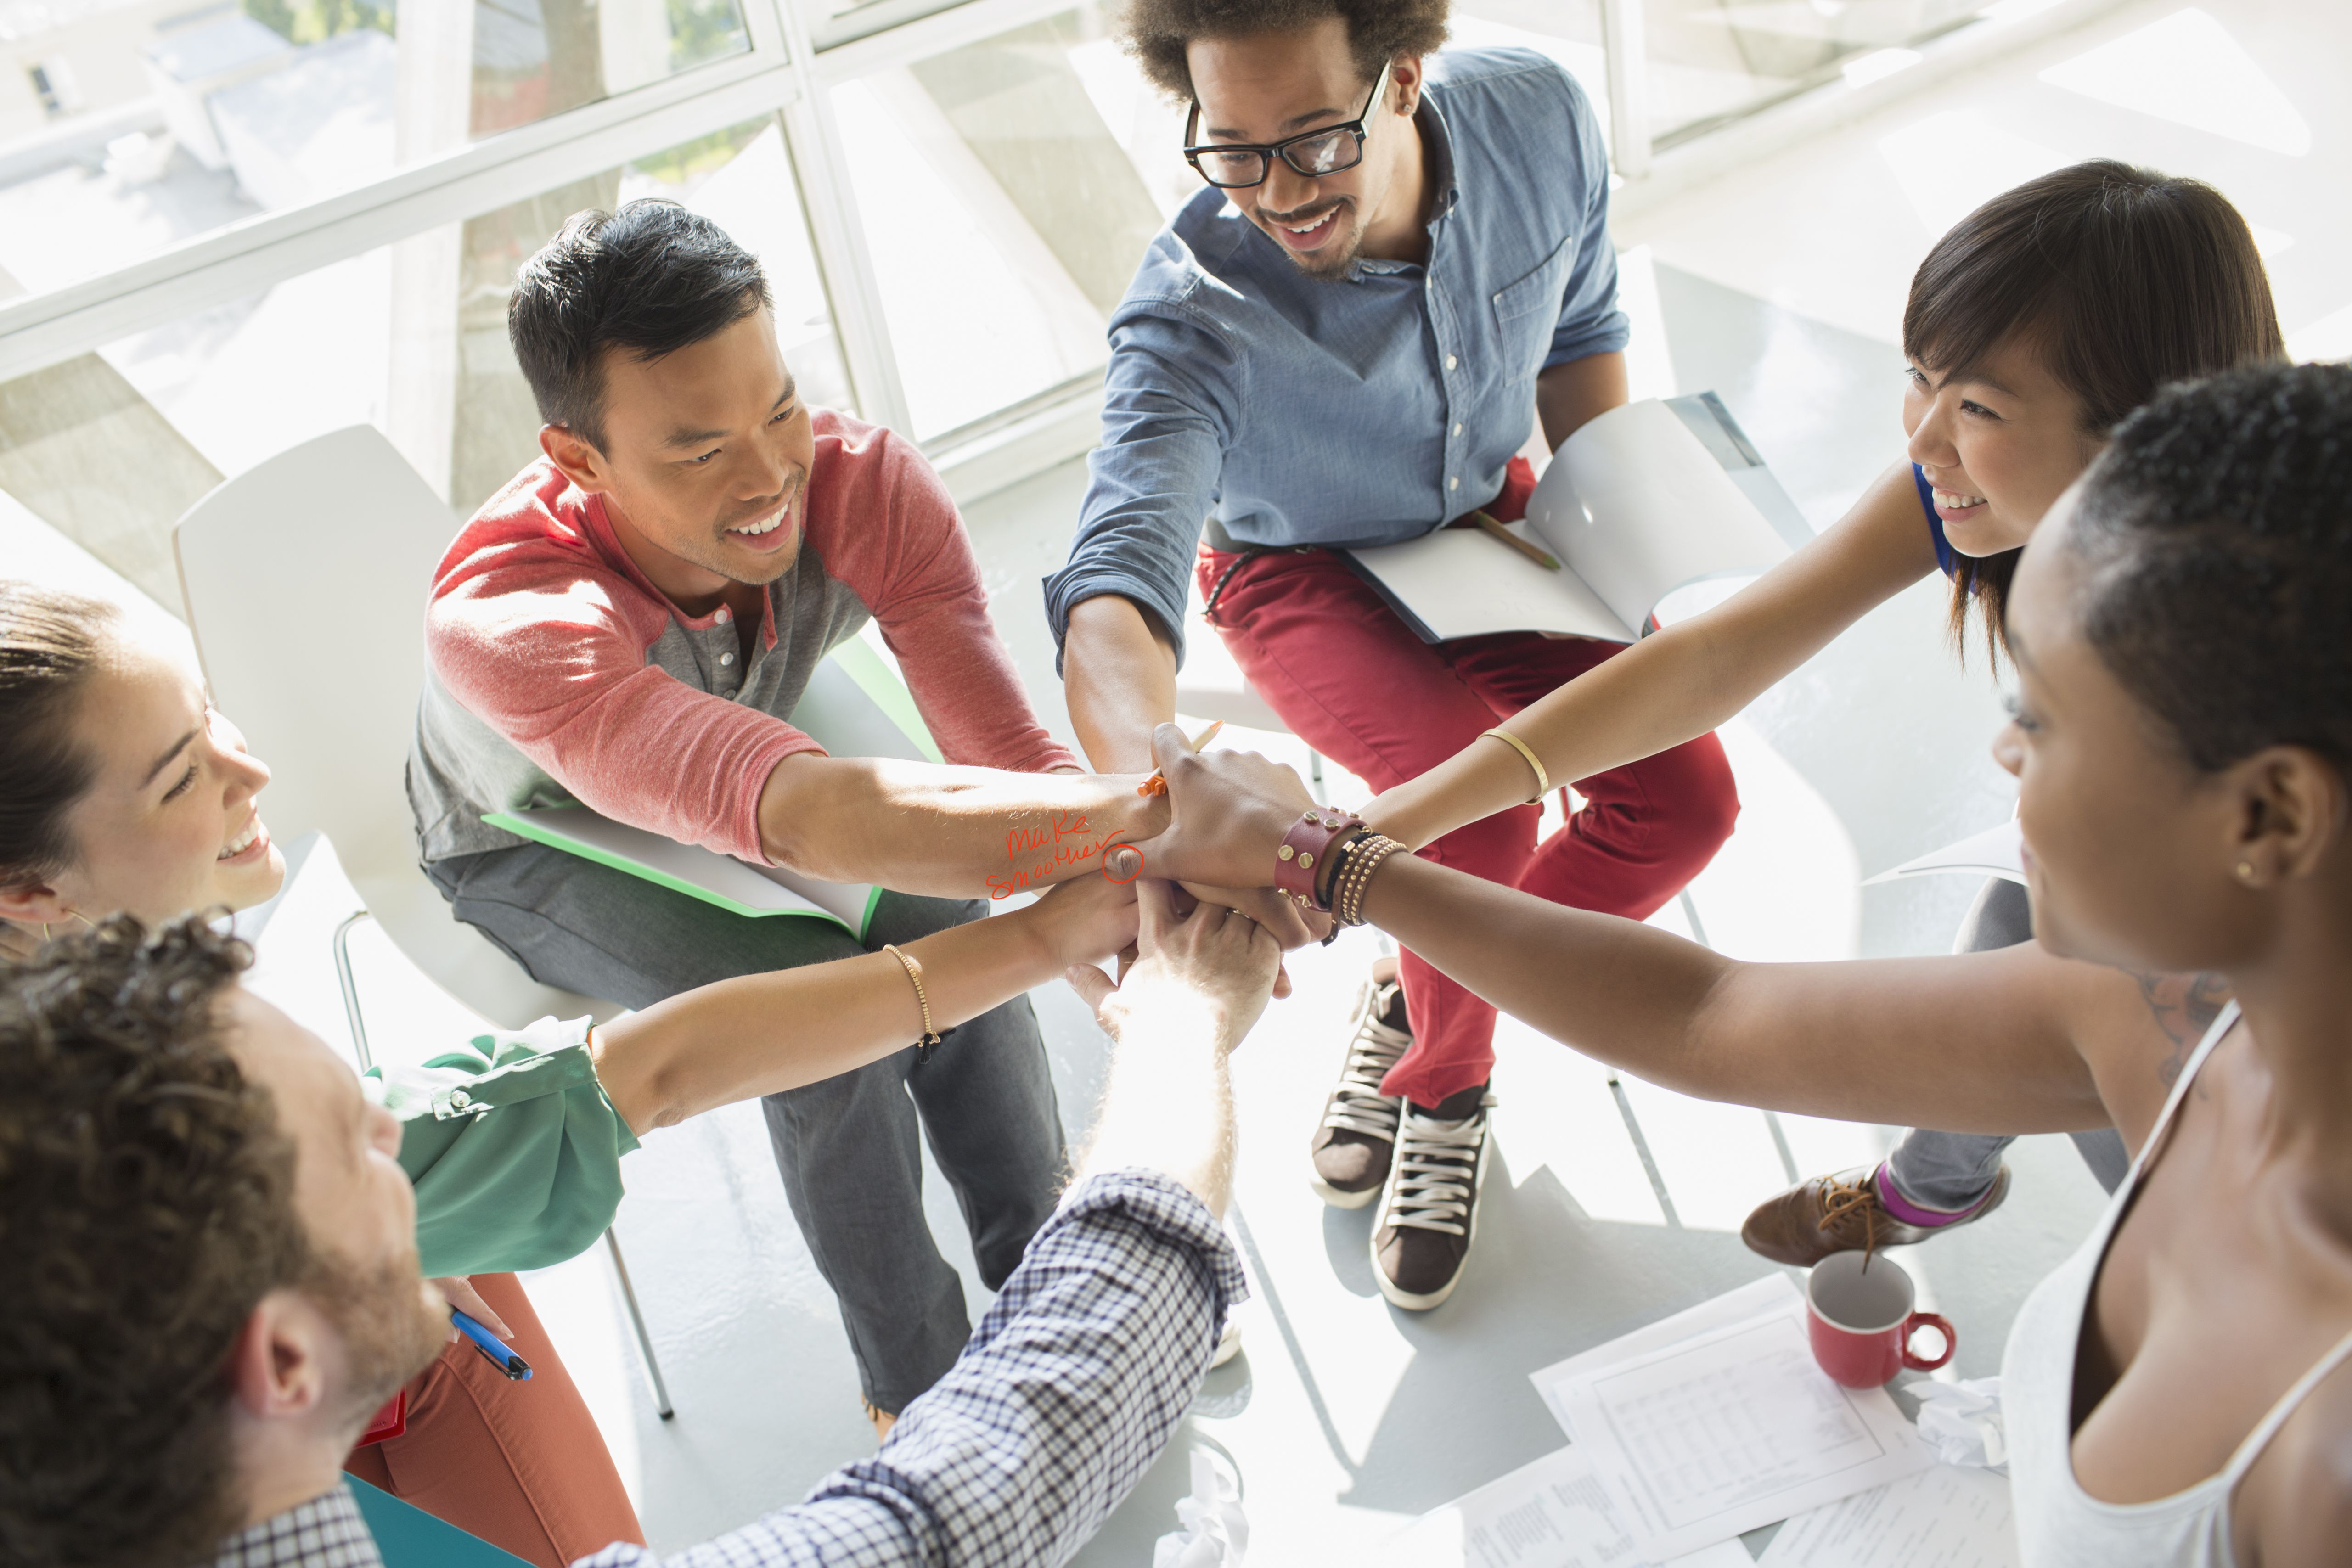 Creative business people connecting hands in huddle in a trusting work environment.